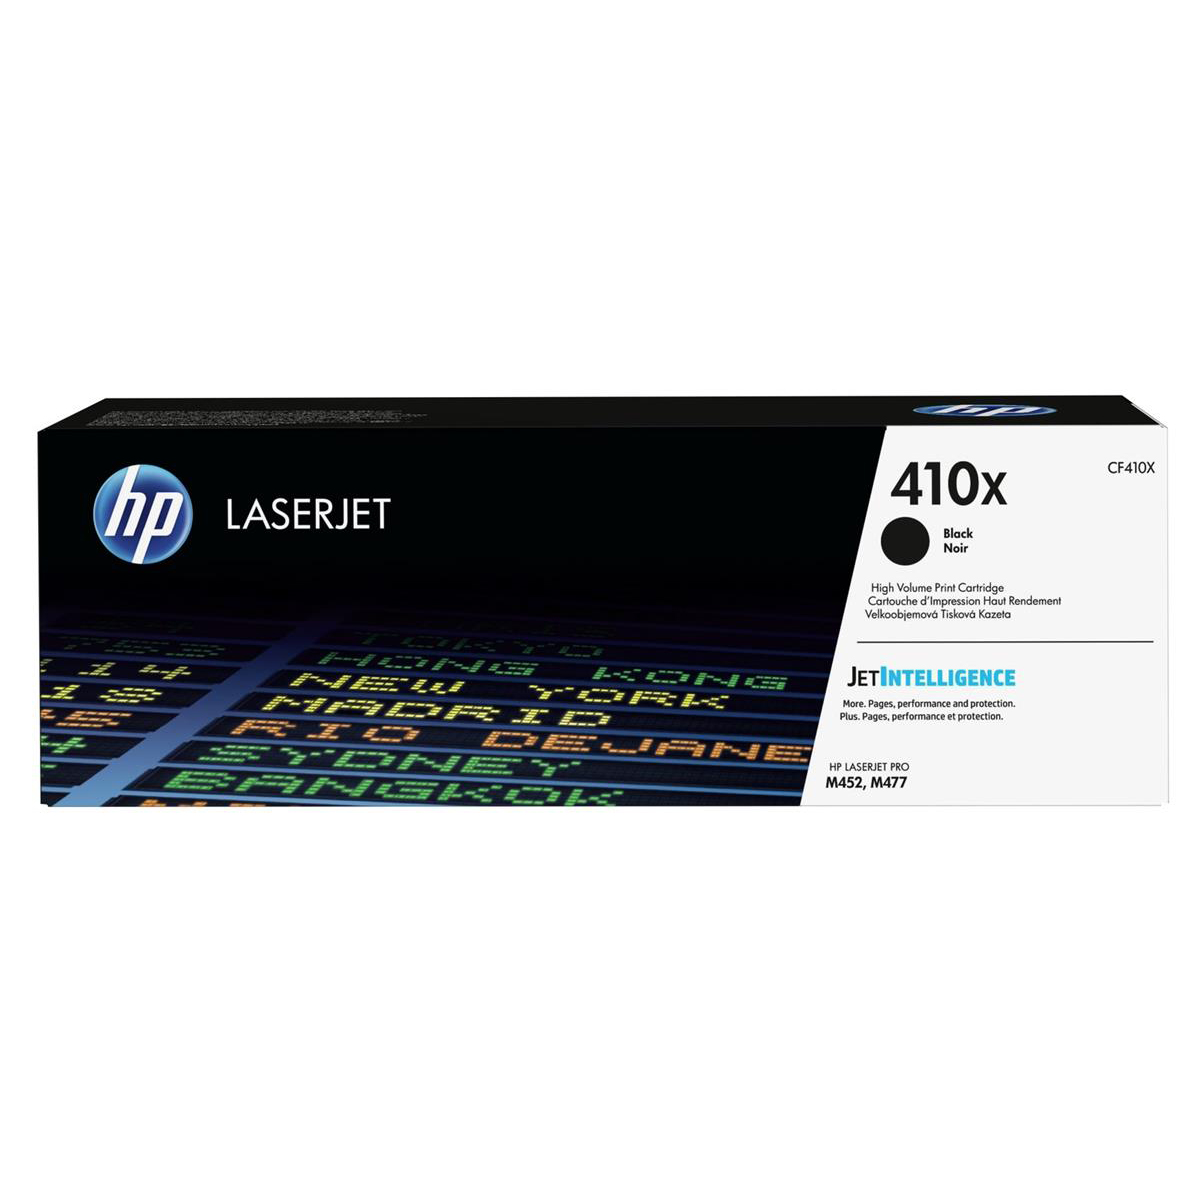 Hewlett Packard [HP] 410X Toner Cartridge High Yield Black Ref CF410X